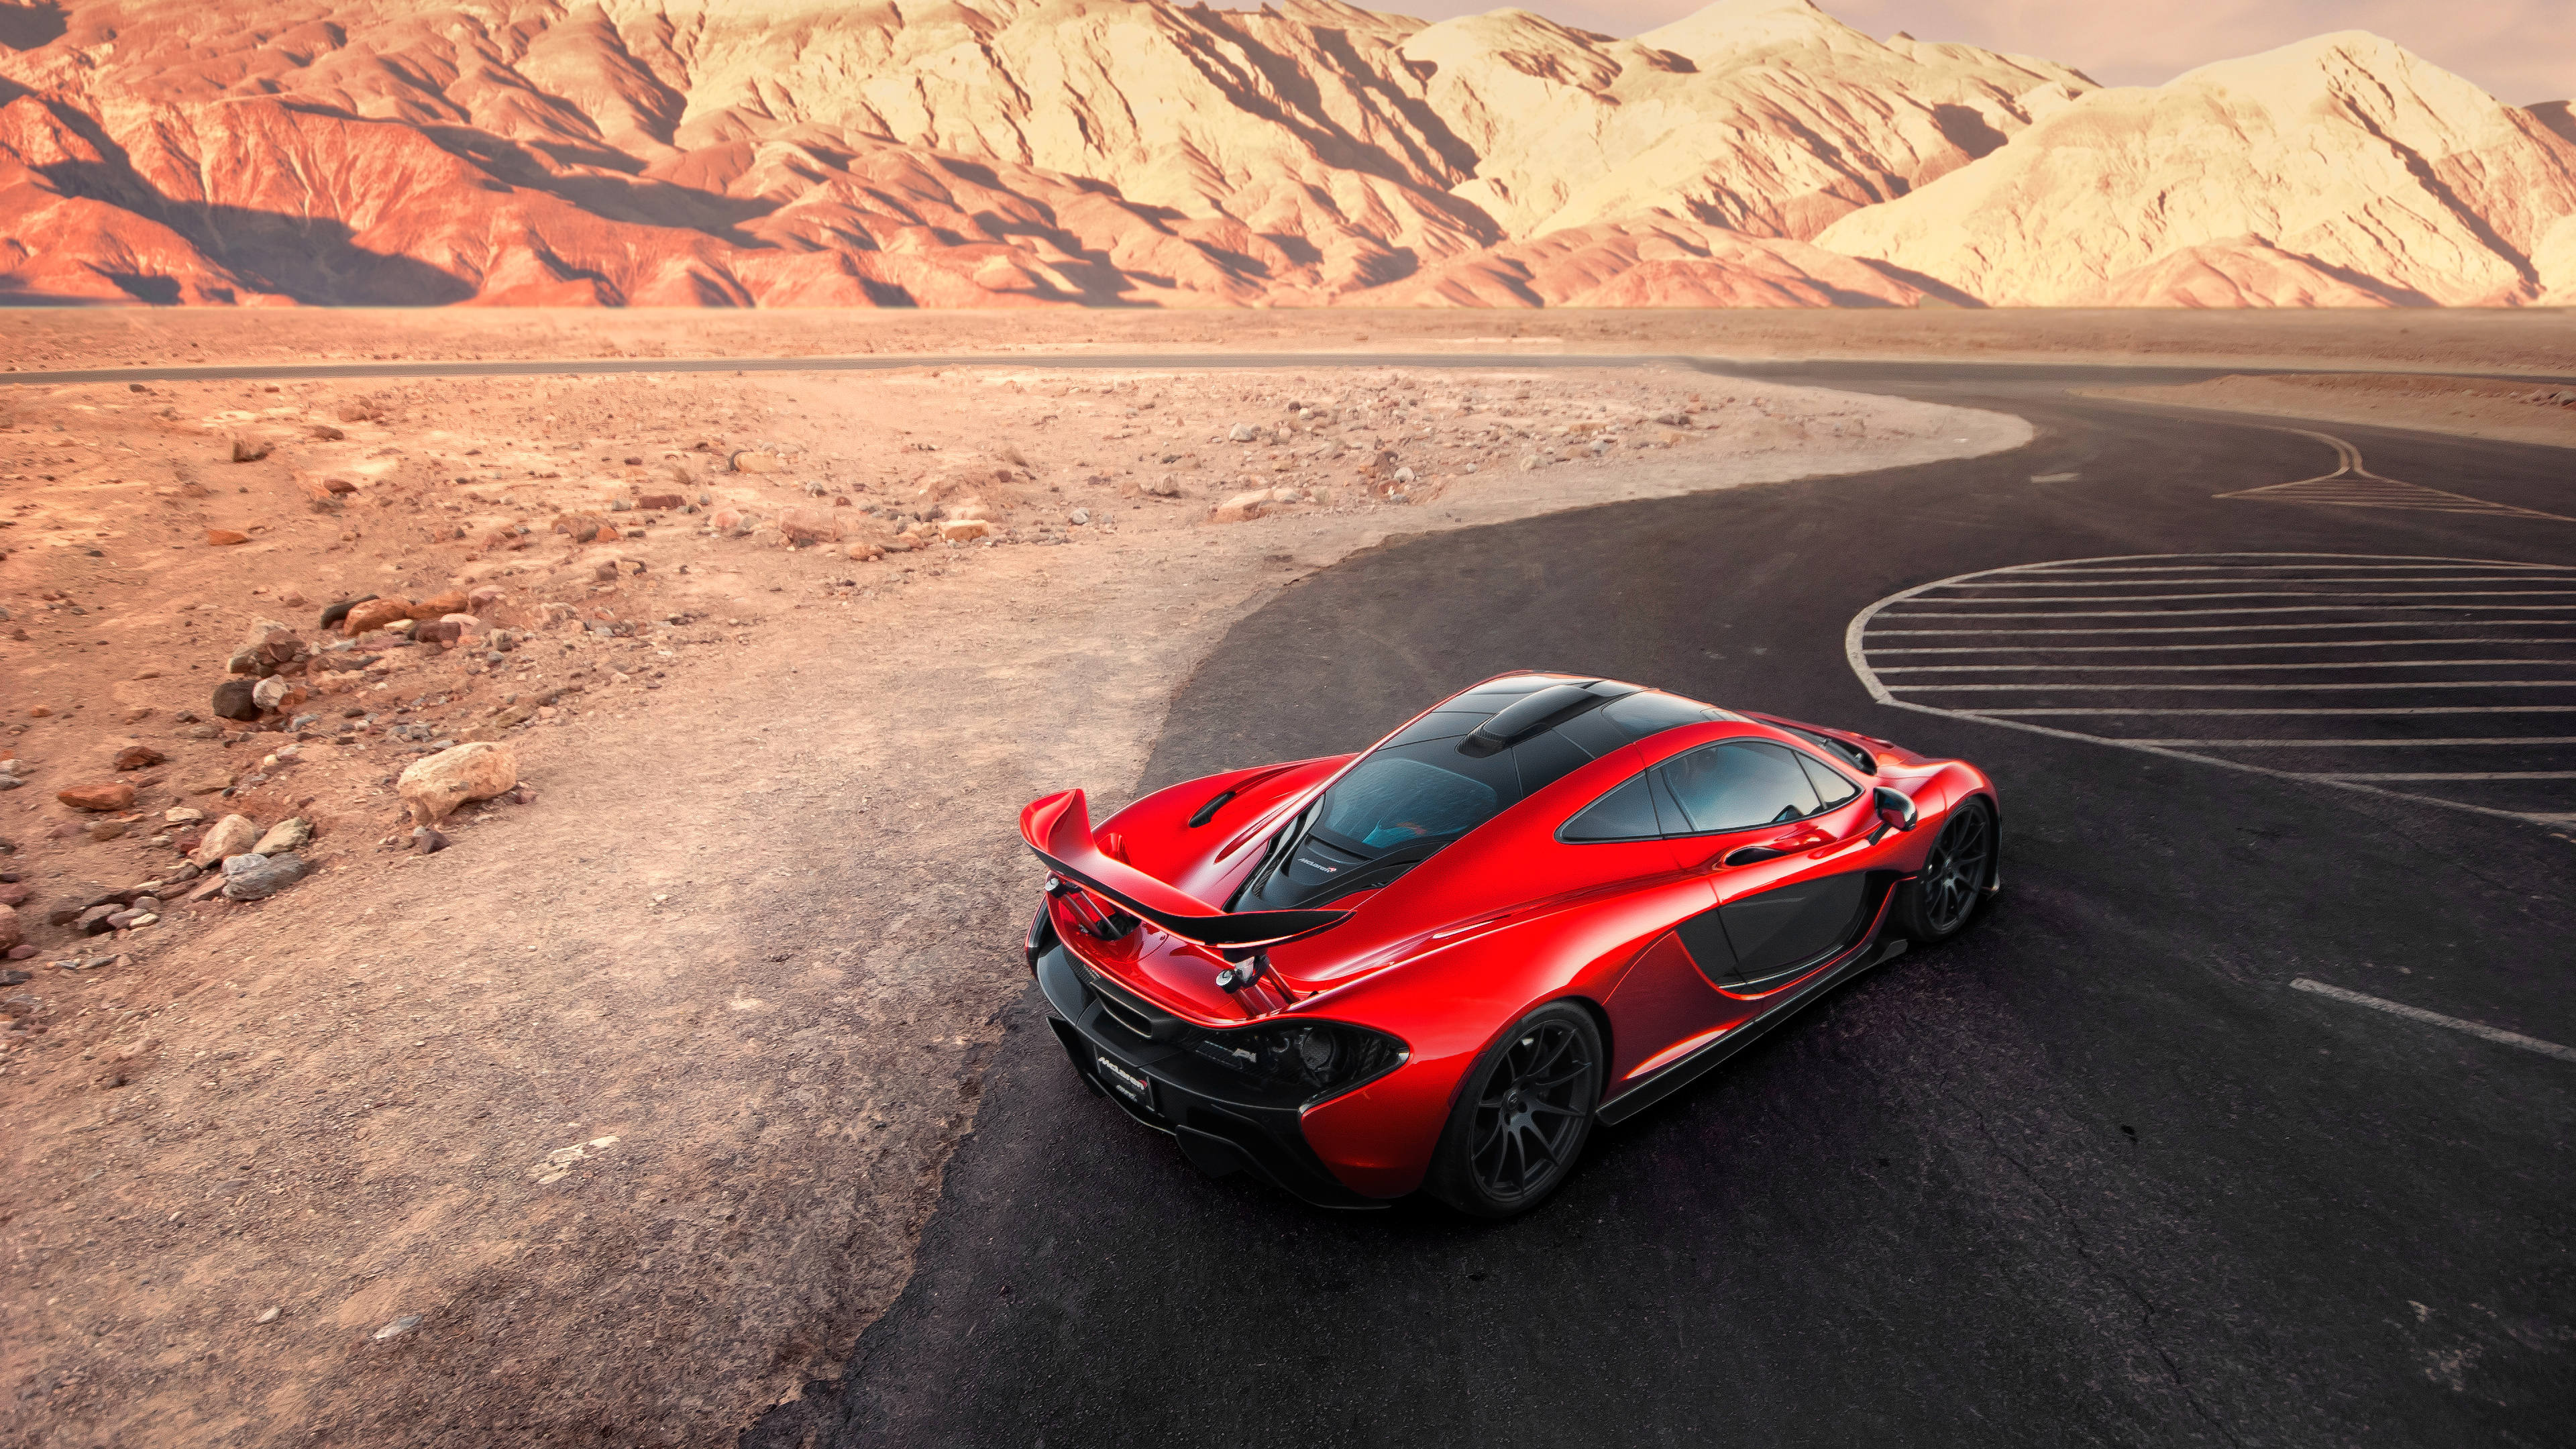 Lamborghini P1 >> McLaren P1 Death Valley Wallpaper | HD Car Wallpapers